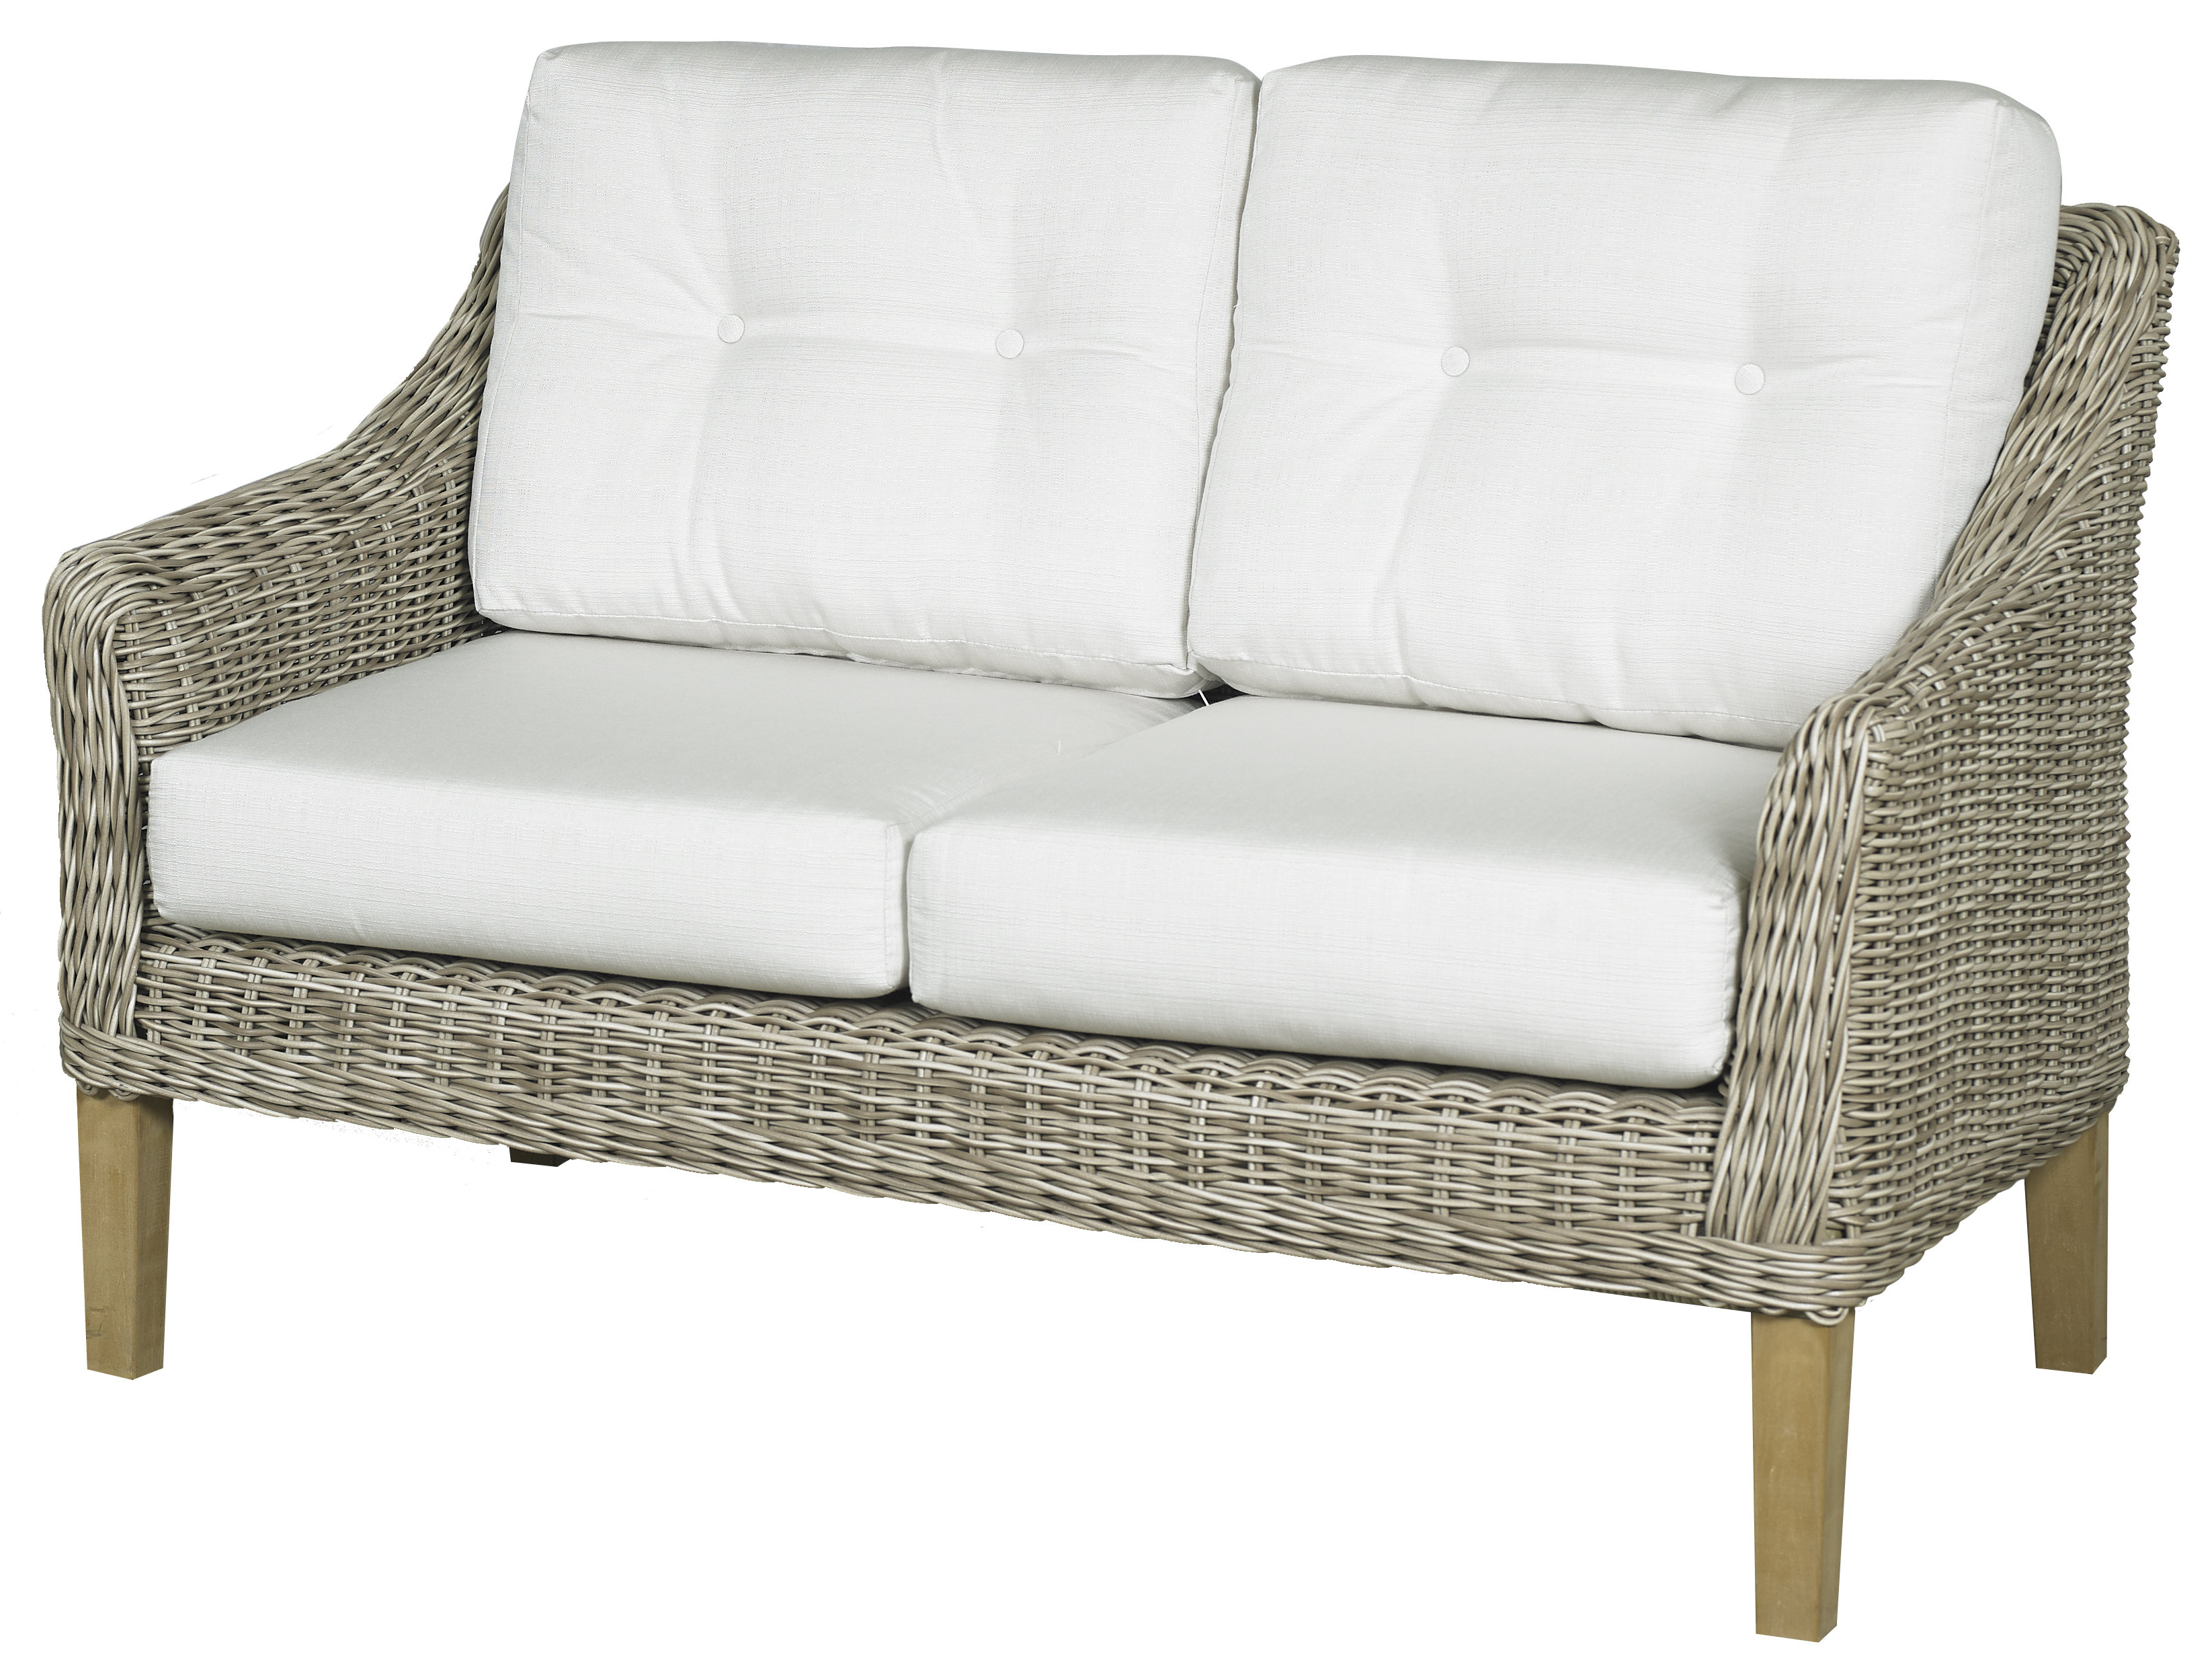 Carlisle Loveseat With Cushions For Preferred Summerton Teak Loveseats With Cushions (View 1 of 20)